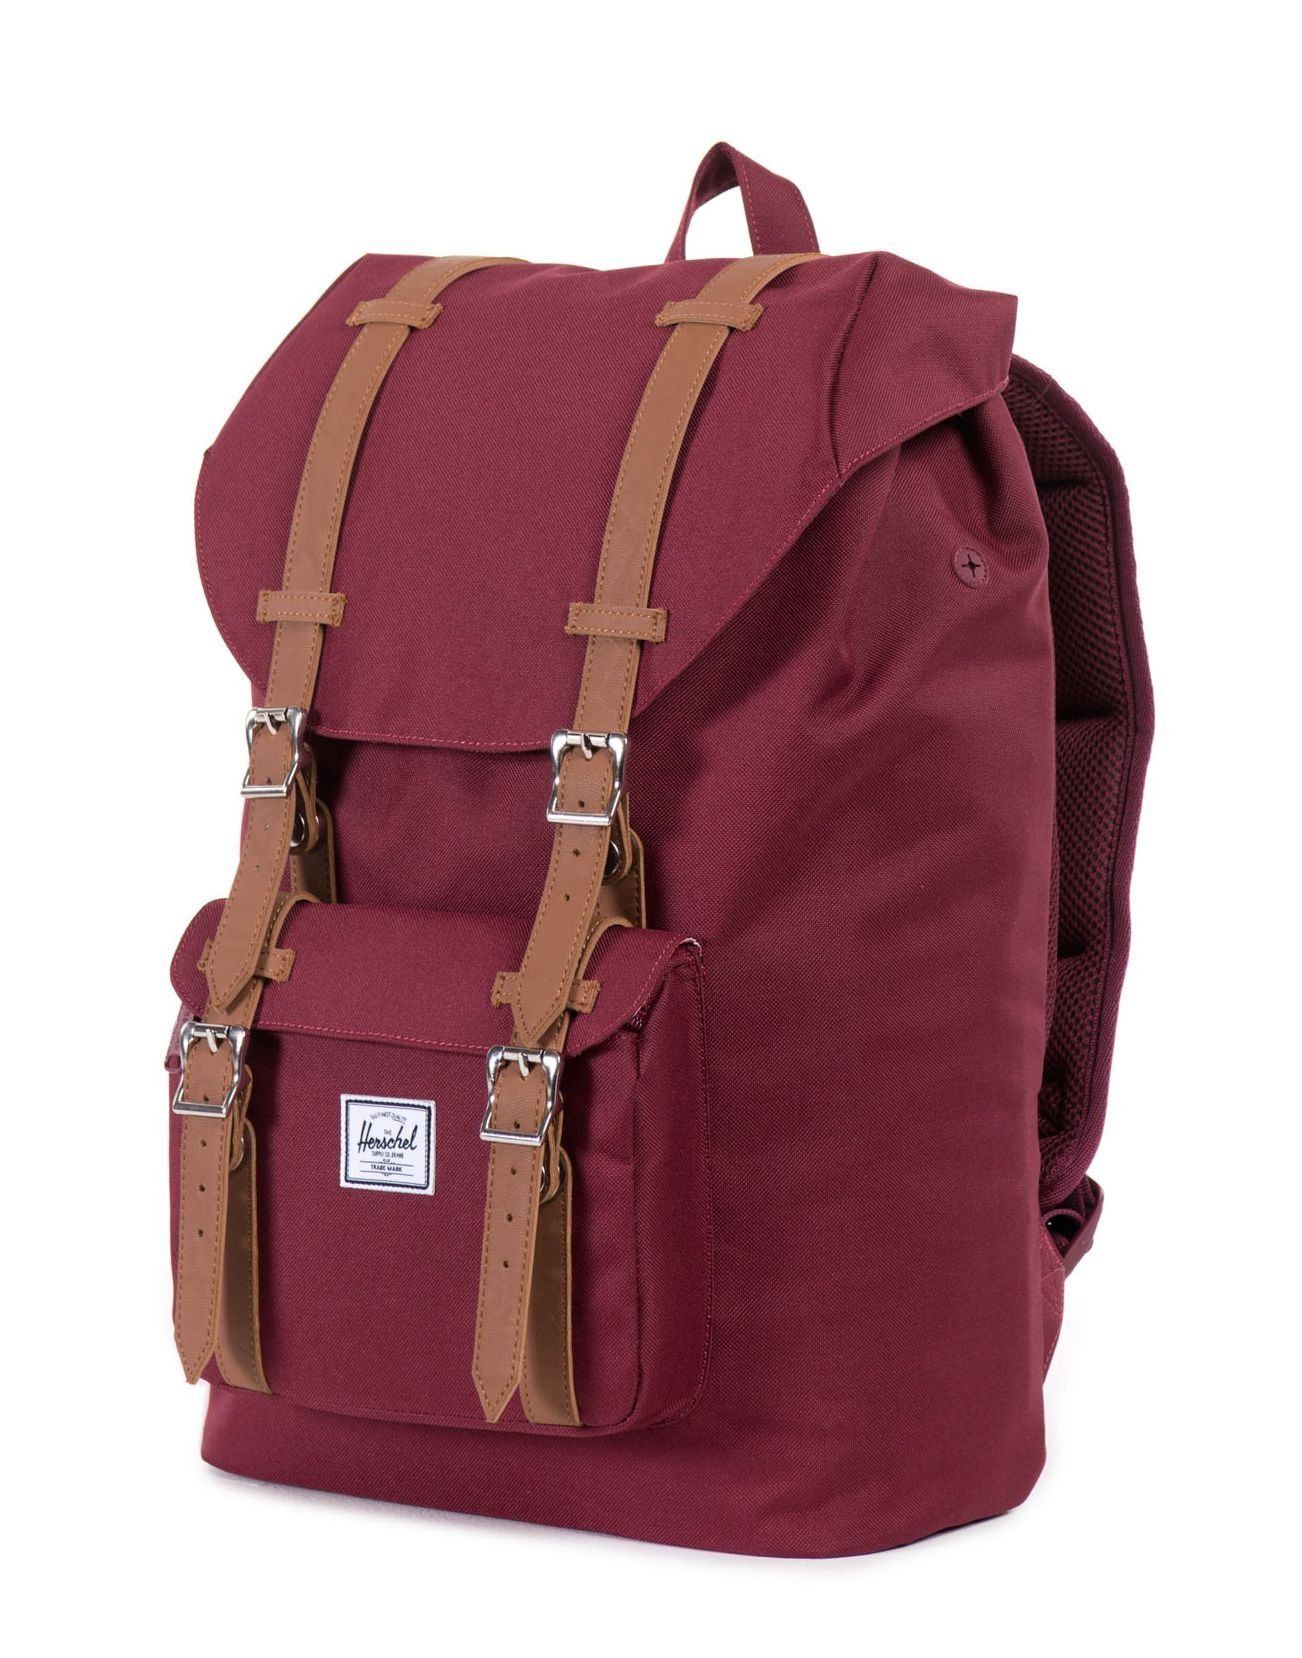 dda729a09b3f Amazon.com  Herschel Supply Co. Little America Mid-Volume